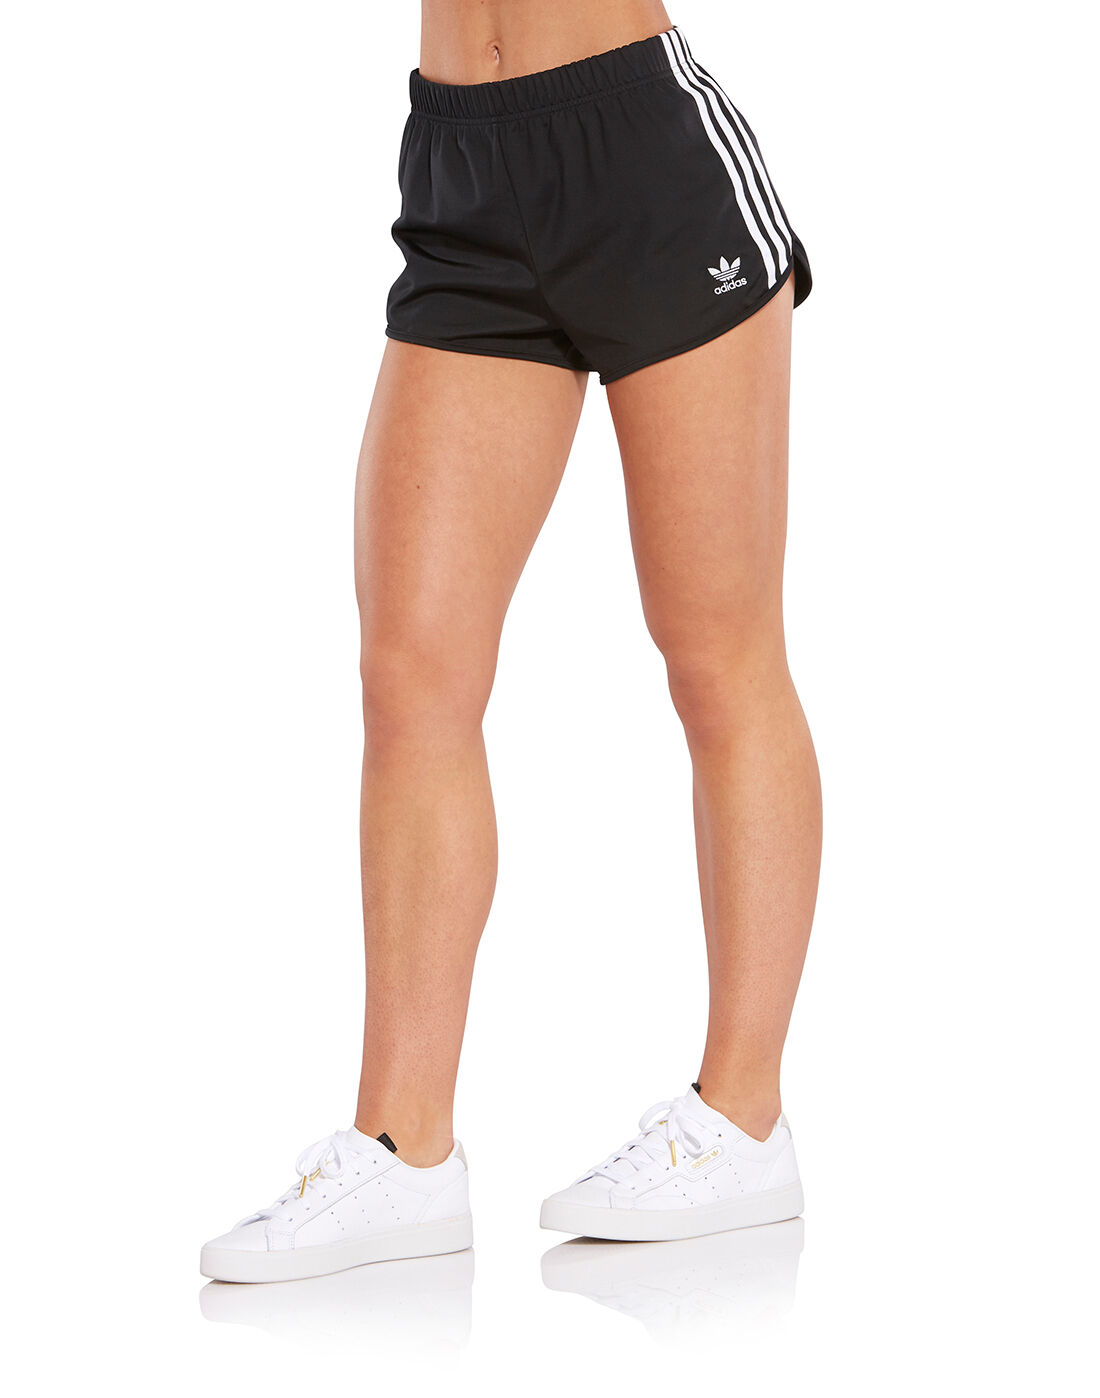 Adidas Originals Black Vintage Argentina Shorts for men